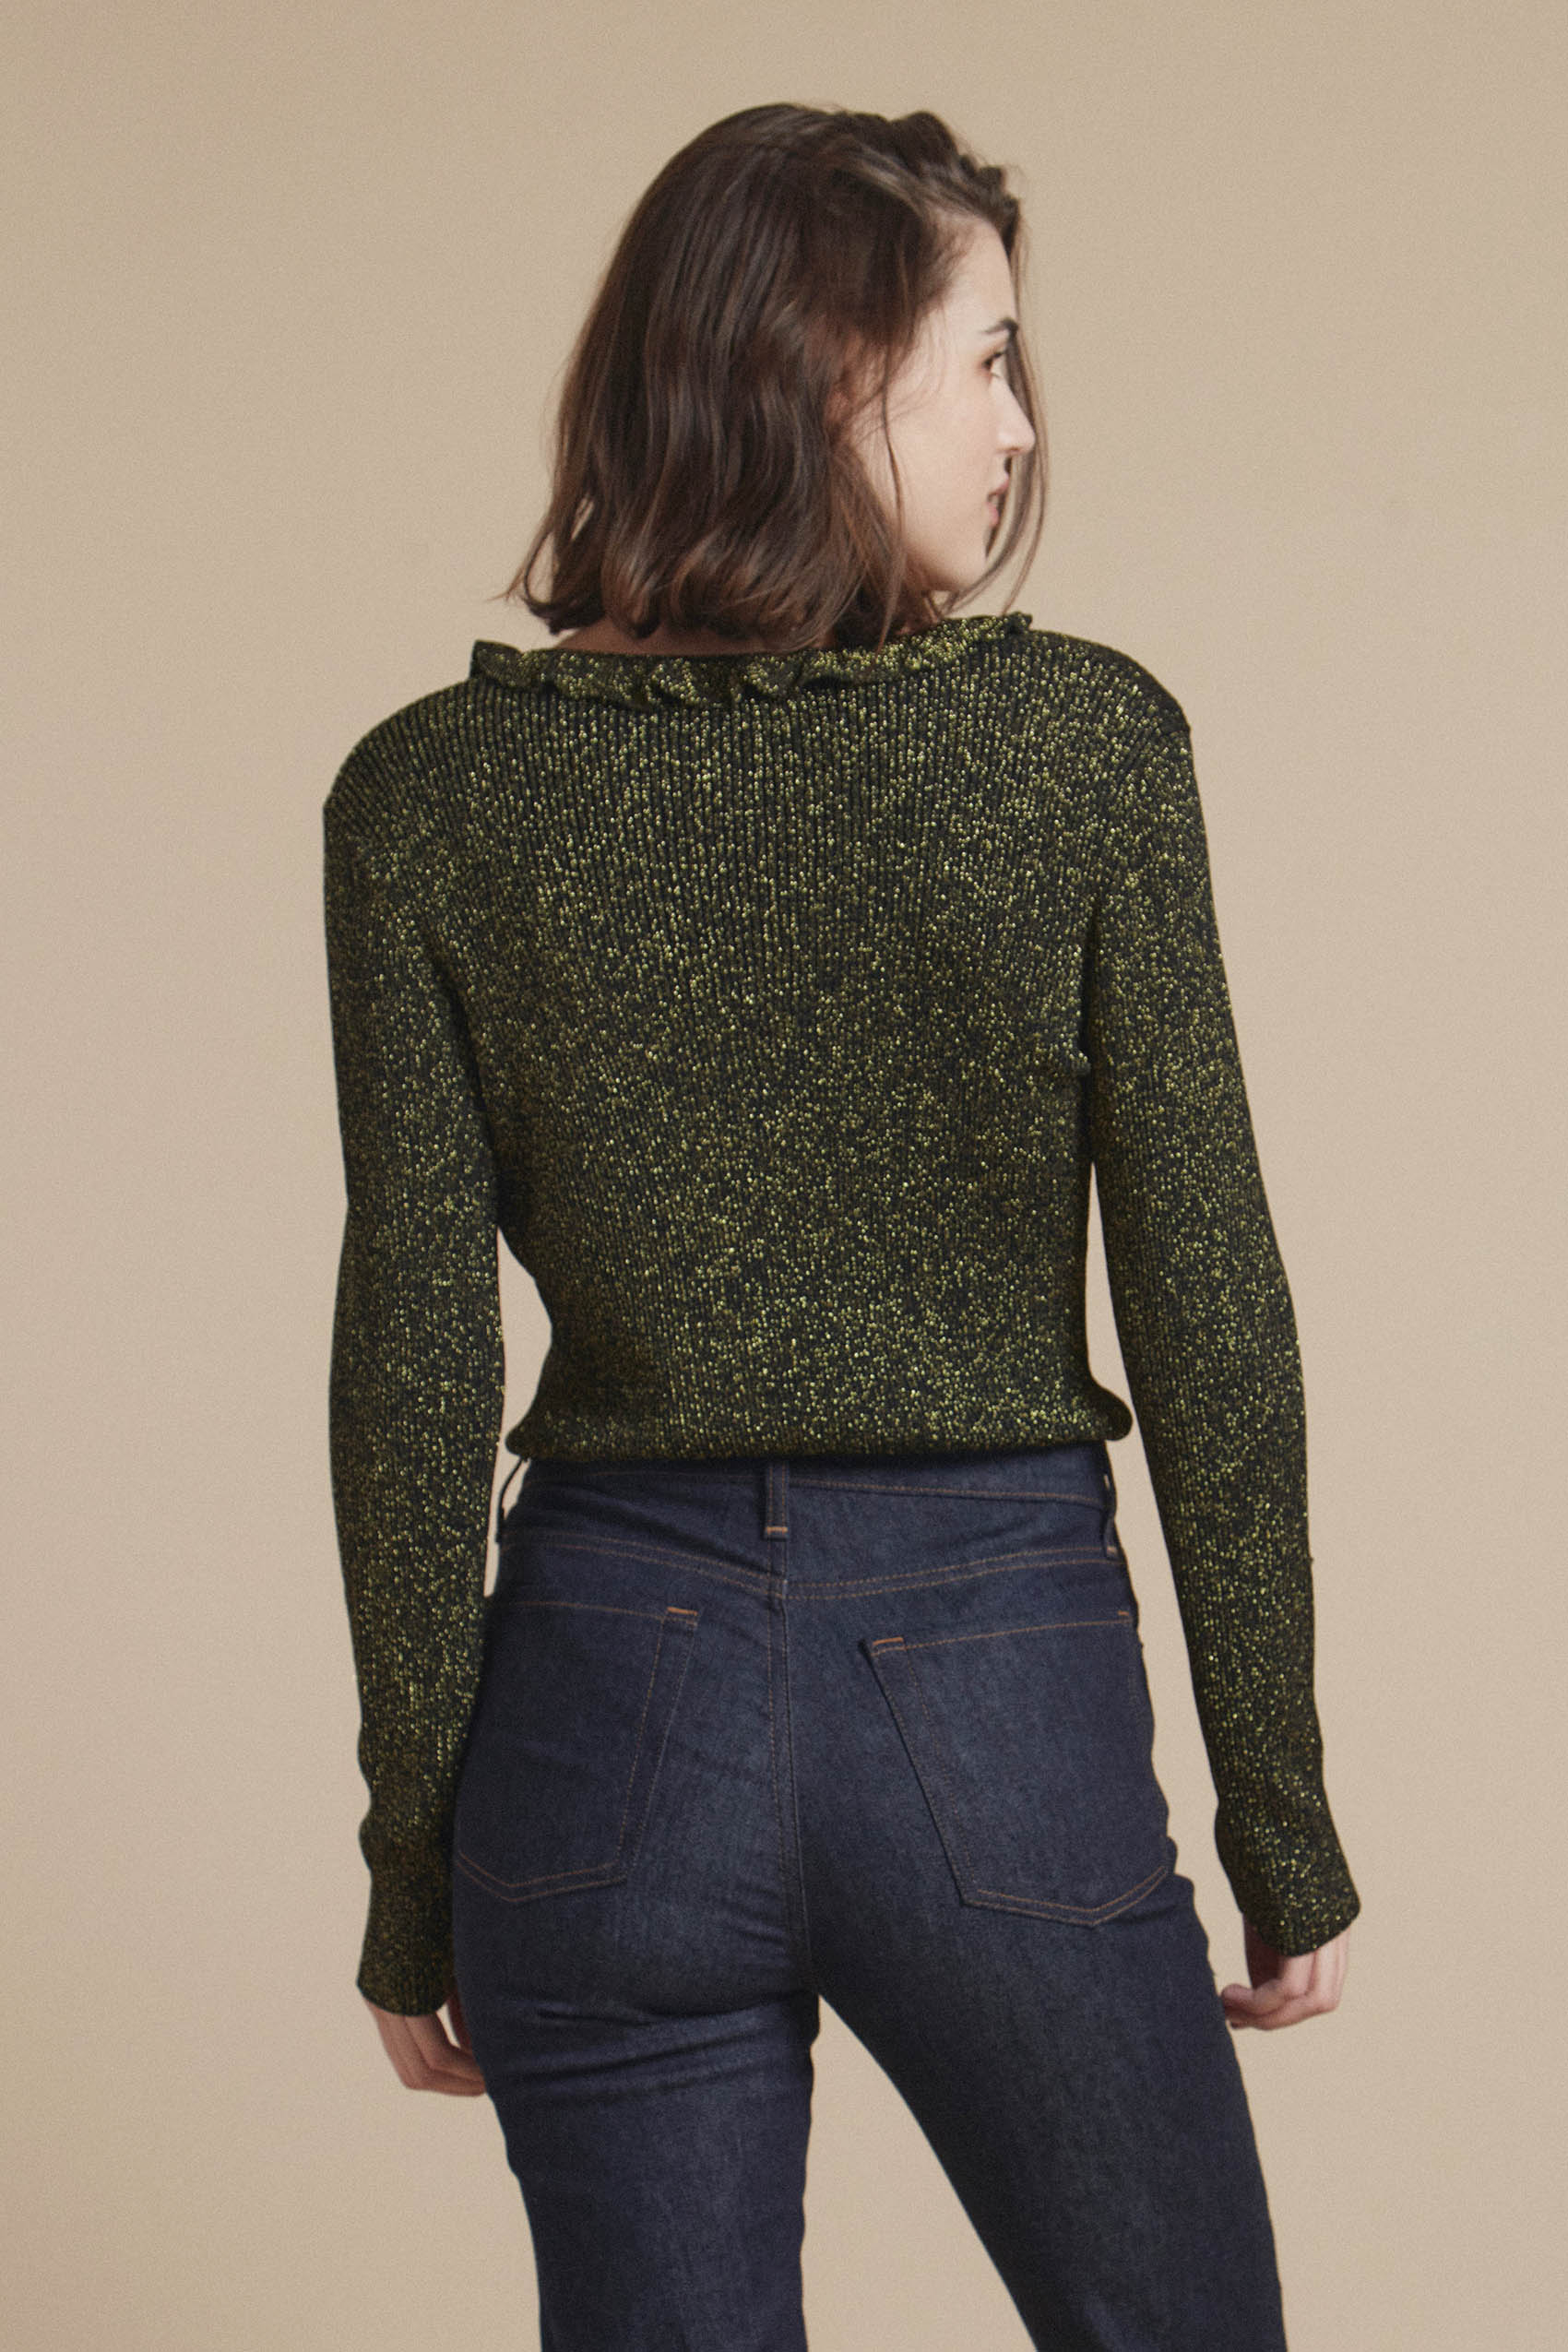 awada_sweater-sophie_54-29-2021__picture-20654